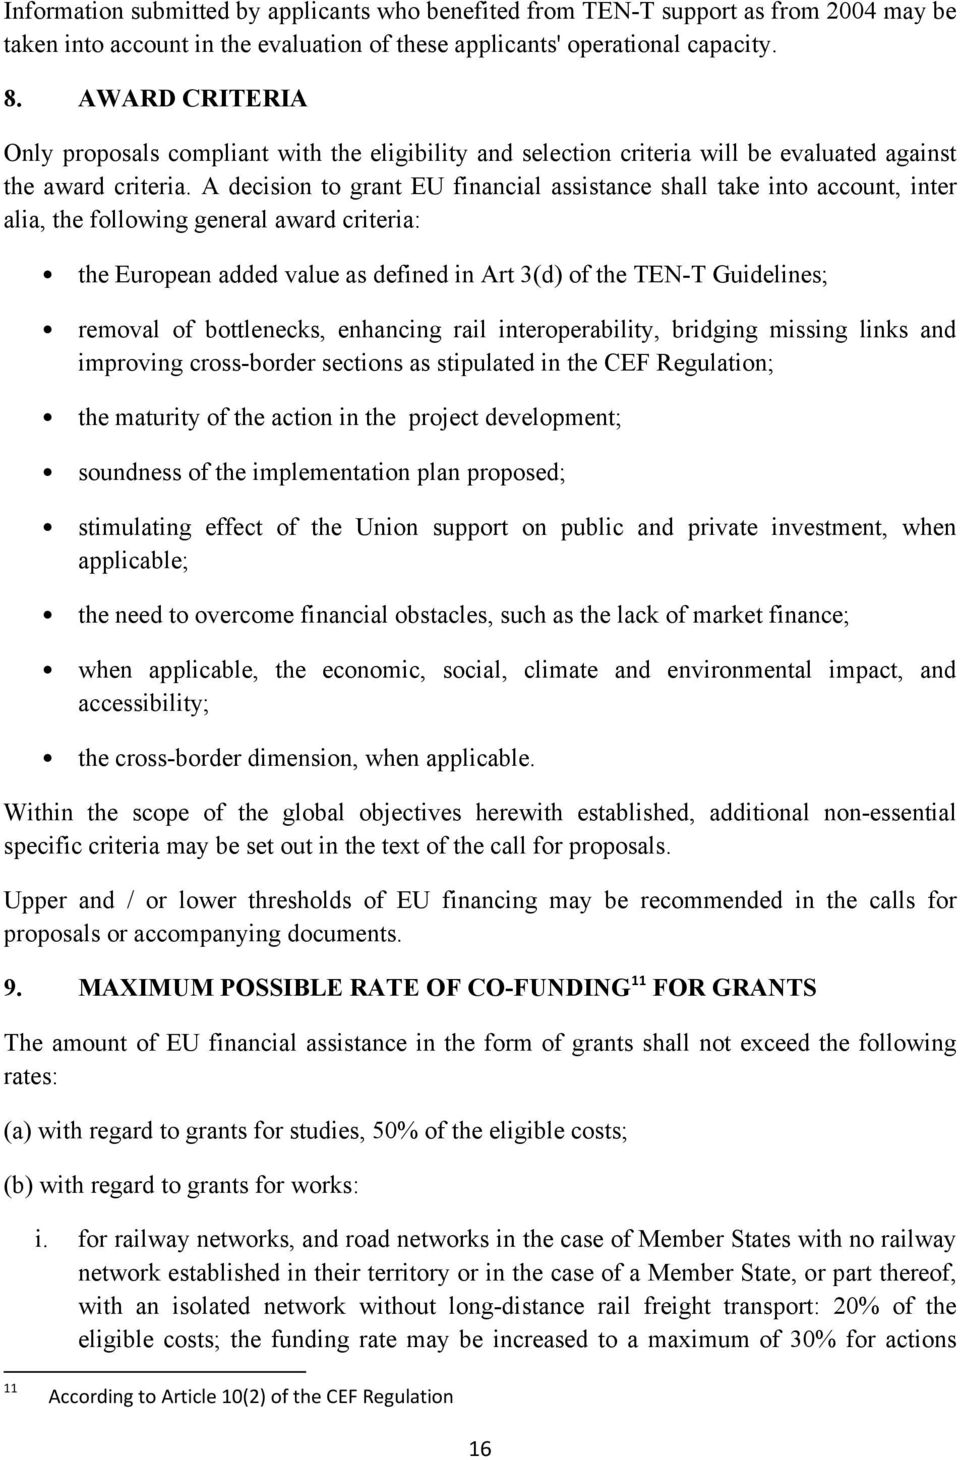 A decision to grant EU financial assistance shall take into account, inter alia, the following general award criteria: the European added value as defined in Art 3(d) of the TEN-T Guidelines; removal